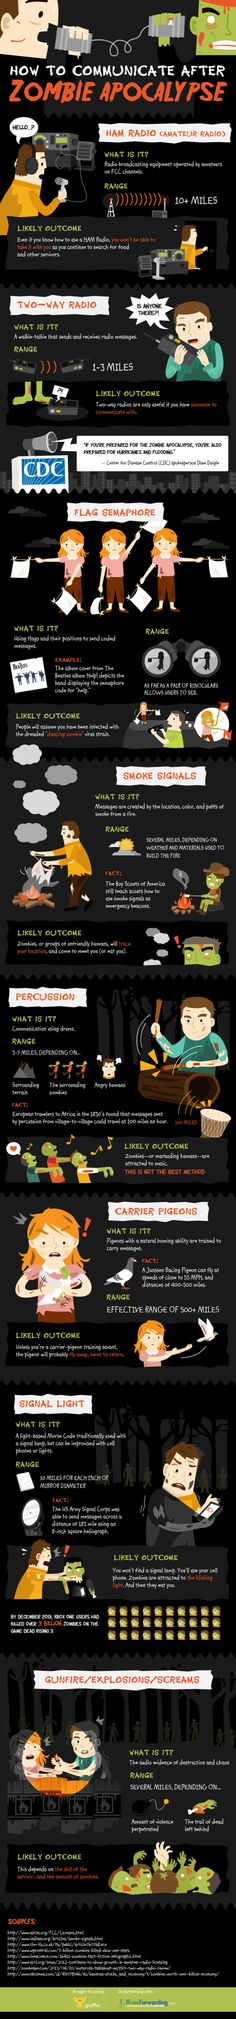 In the unfortunate case of a zombie apocalypse, this infographic shares everything you need to know about communicating with the outside world... or at least what's left of it.